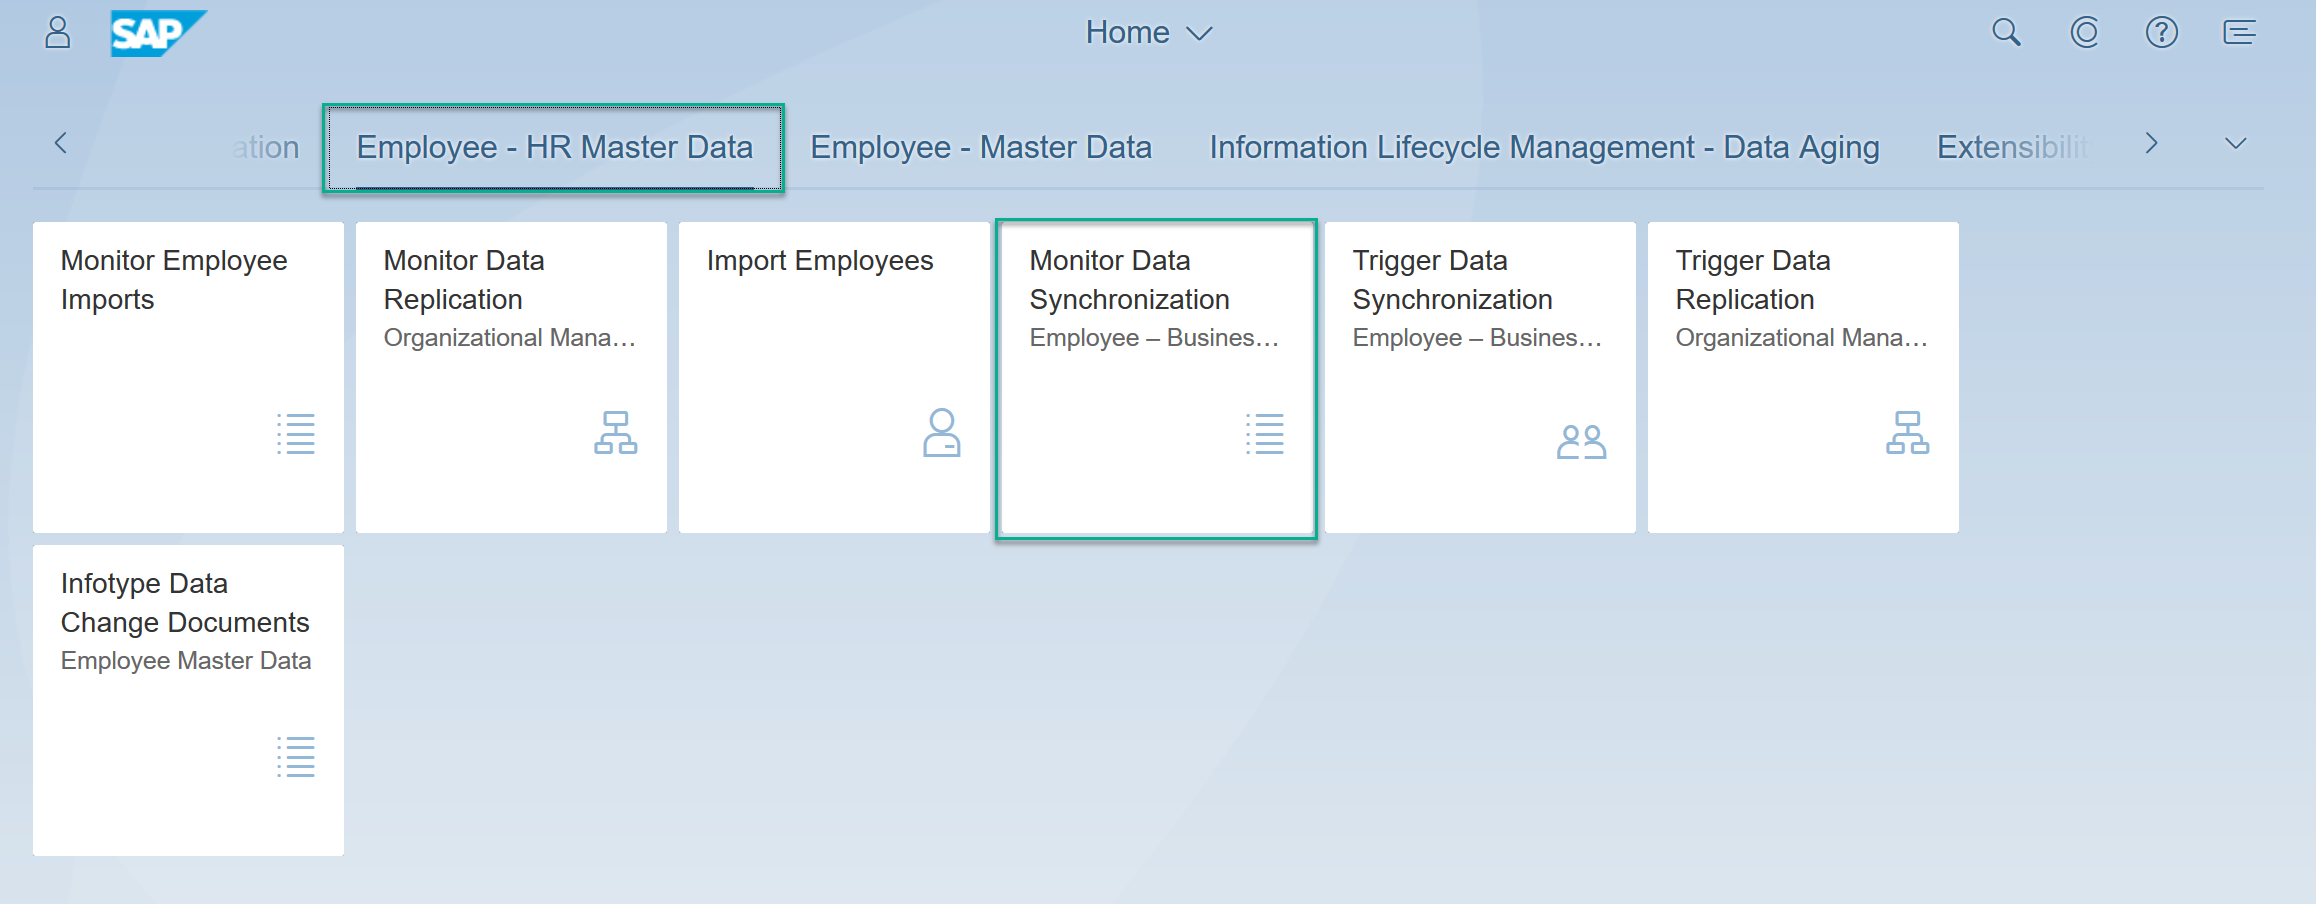 How to import Employee Master Data to S/4HANA Cloud – Part I | SAP Blogs